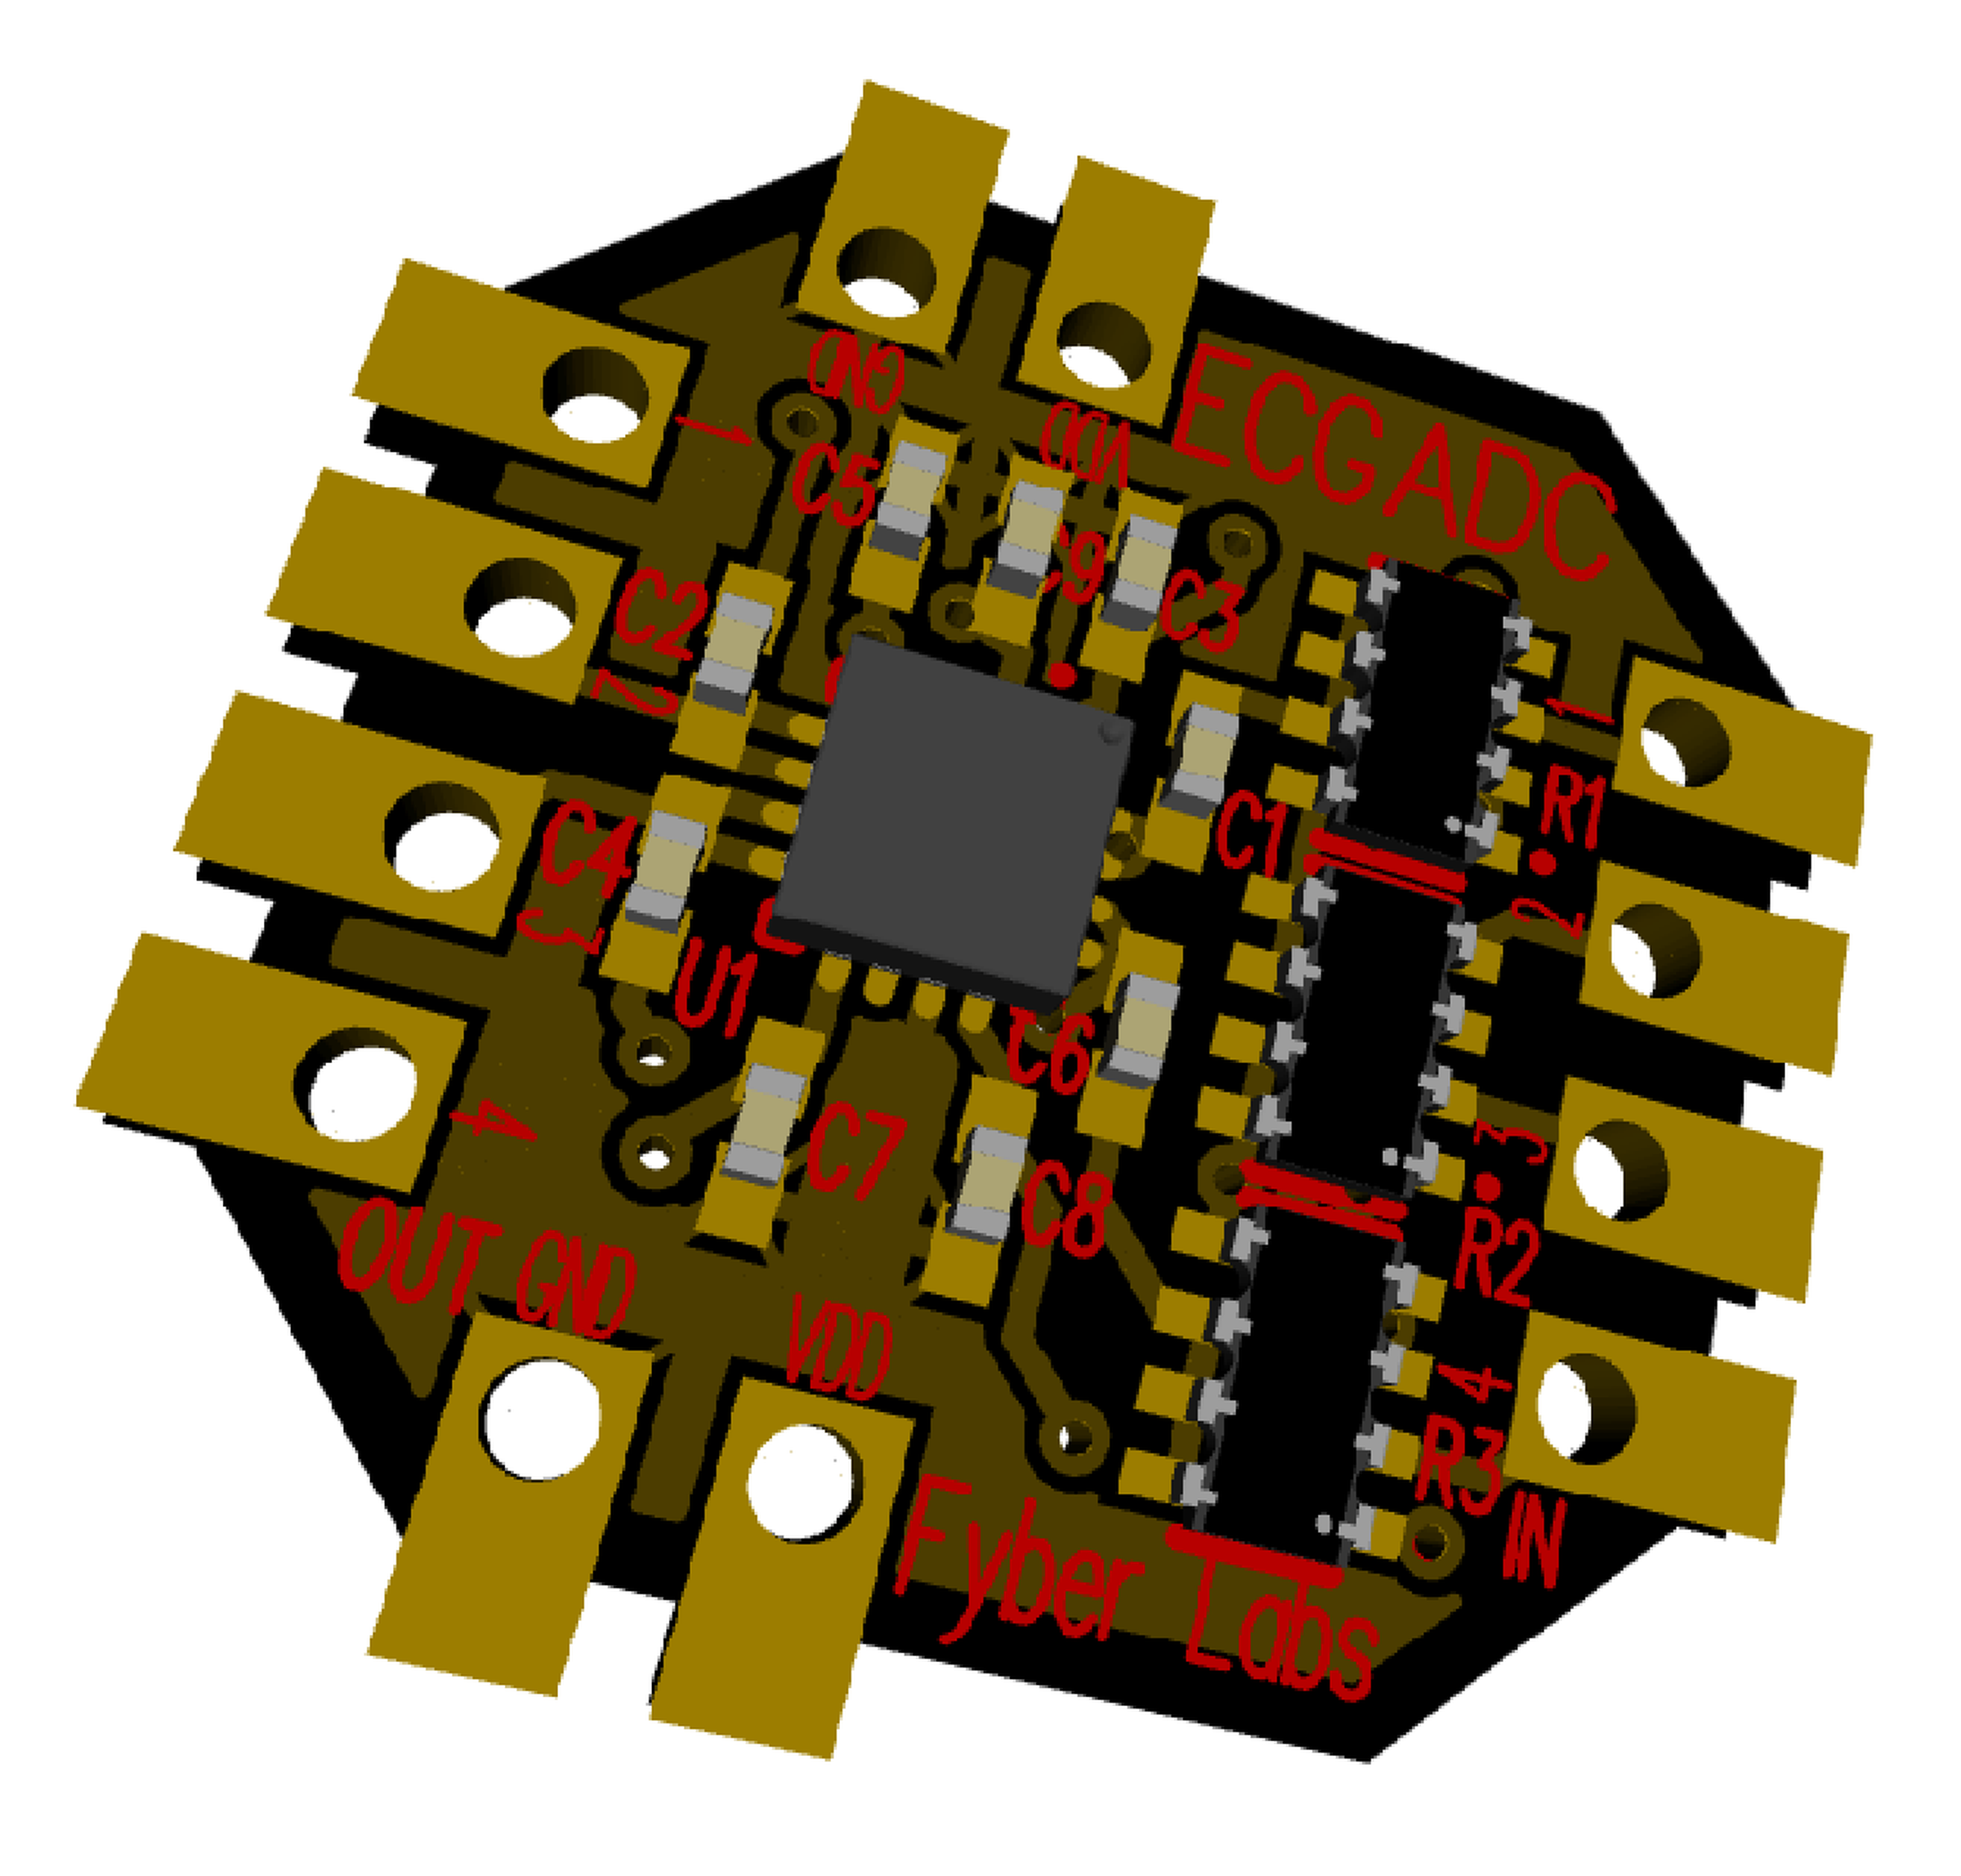 Ecg Adc Flex Module From Fyber Labs Inc On Tindie